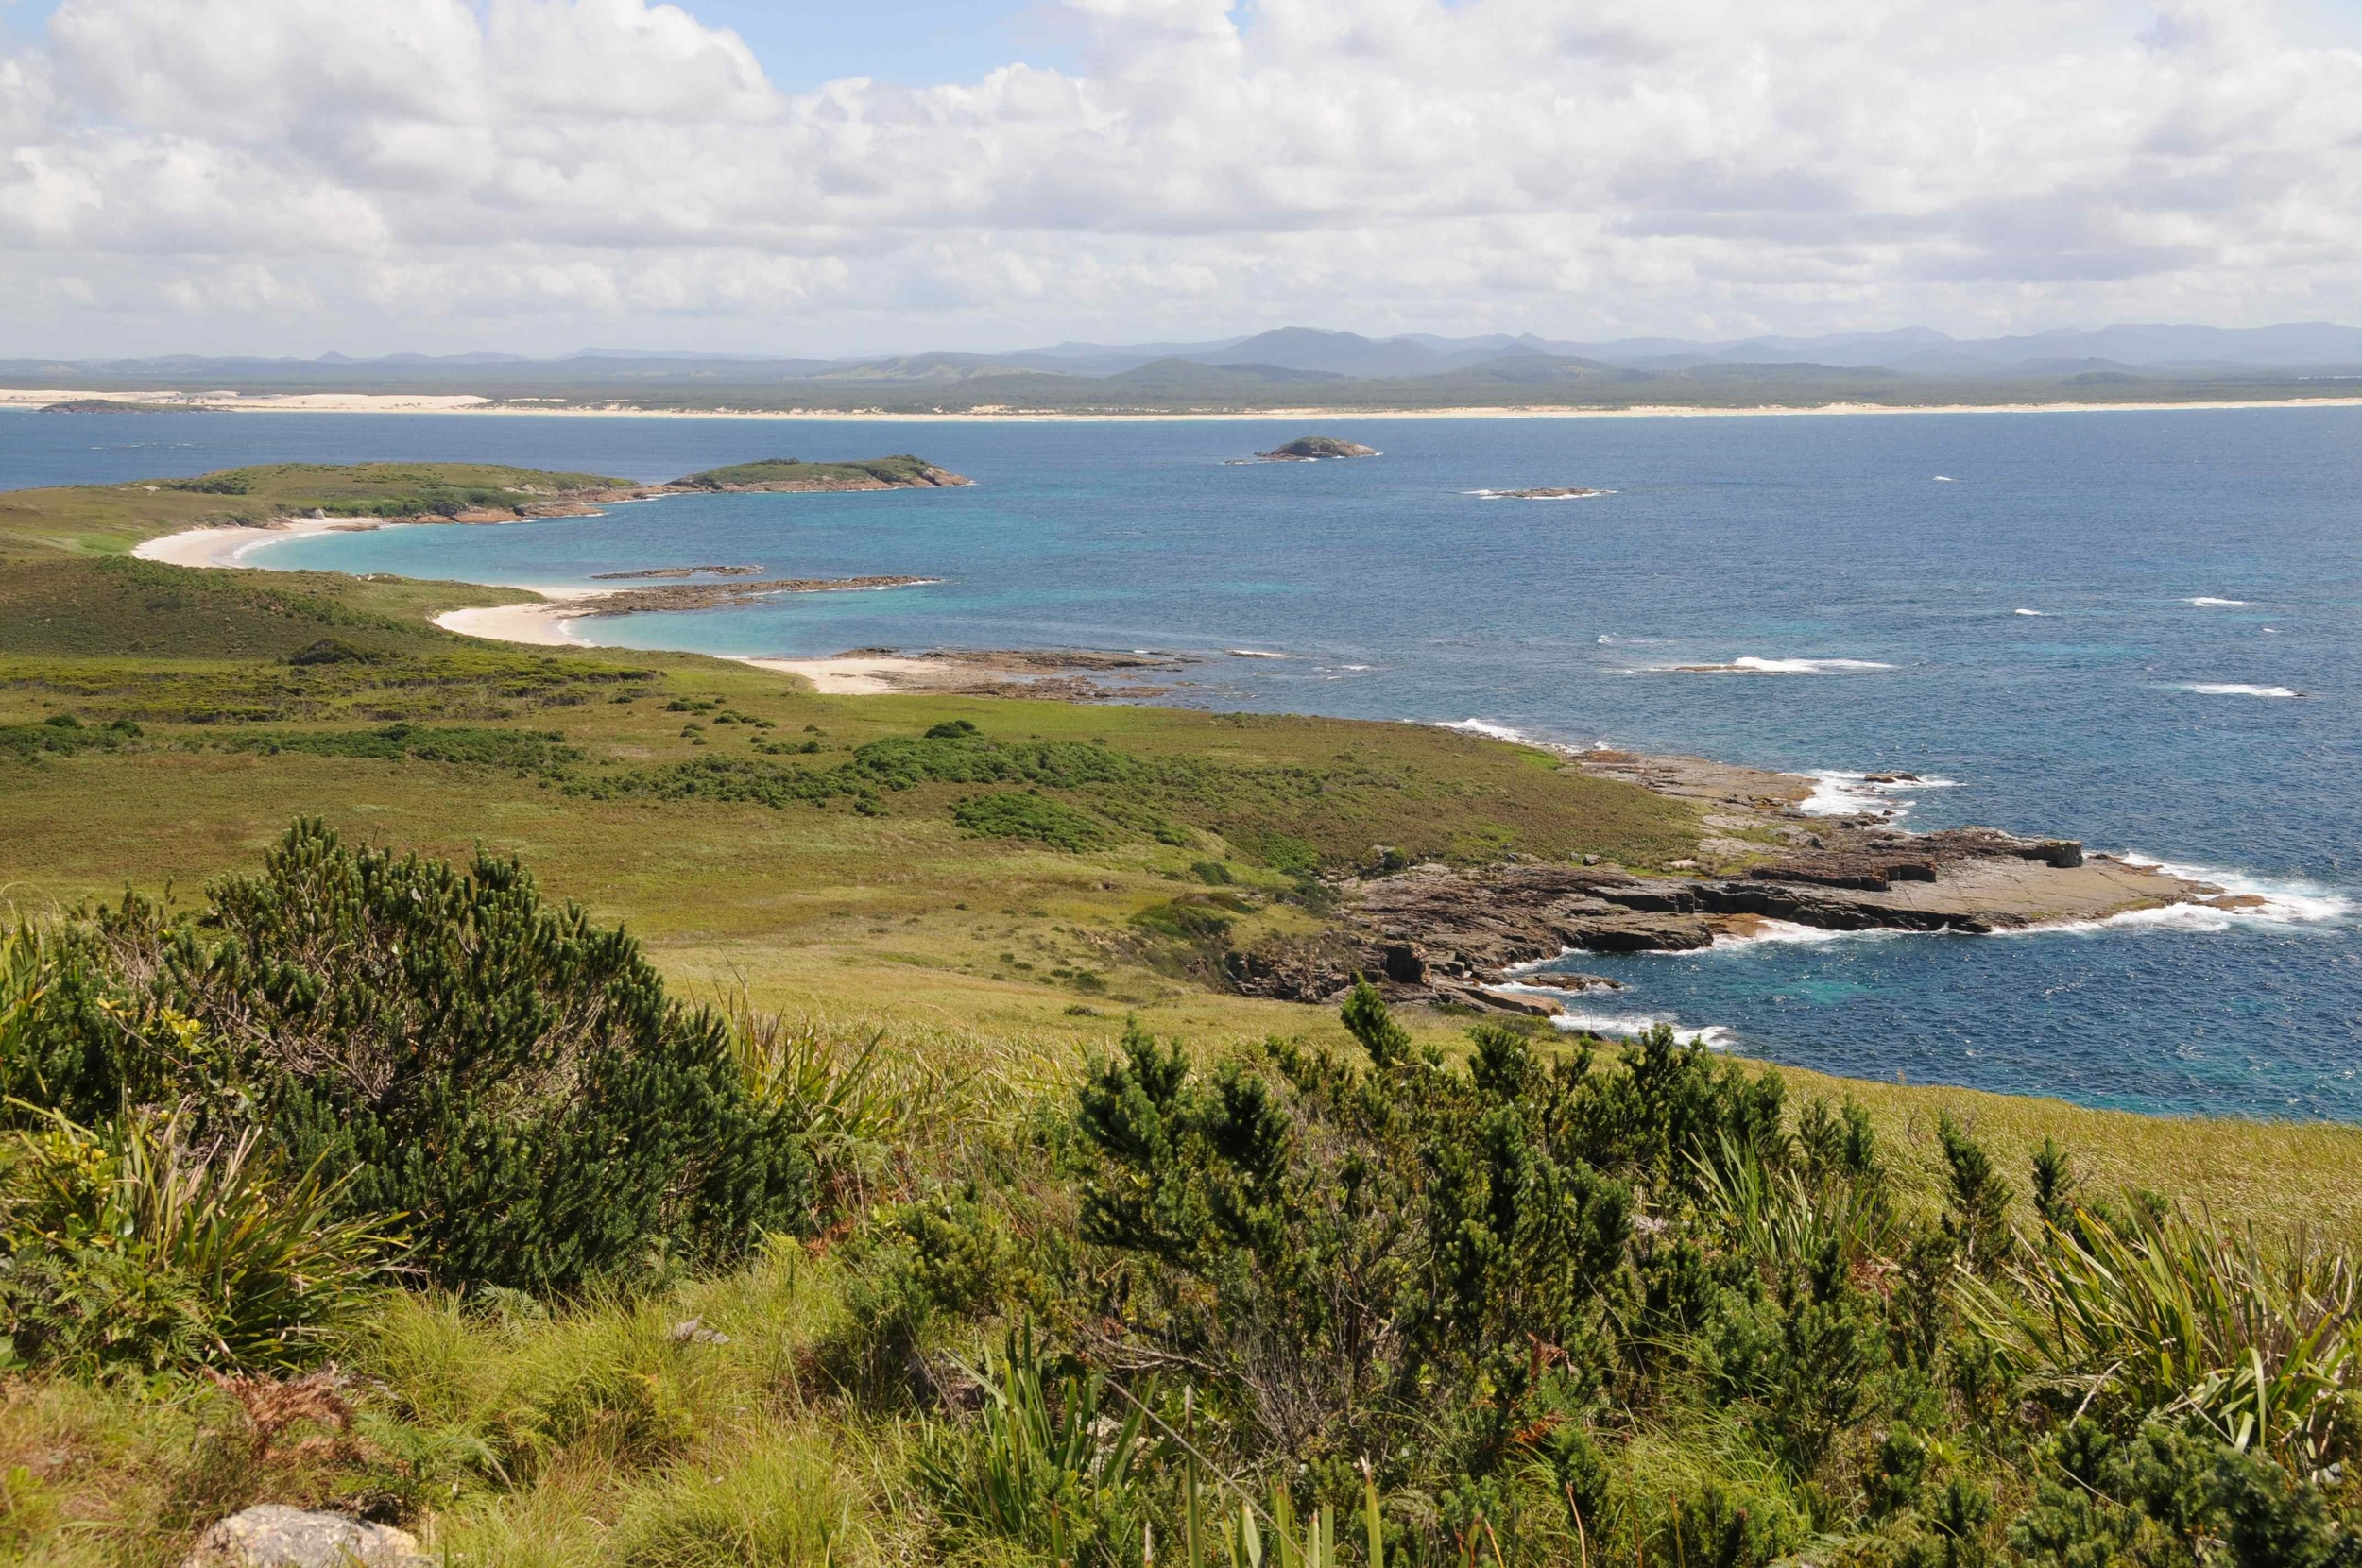 Frog research: West across Broughton Island to mainland